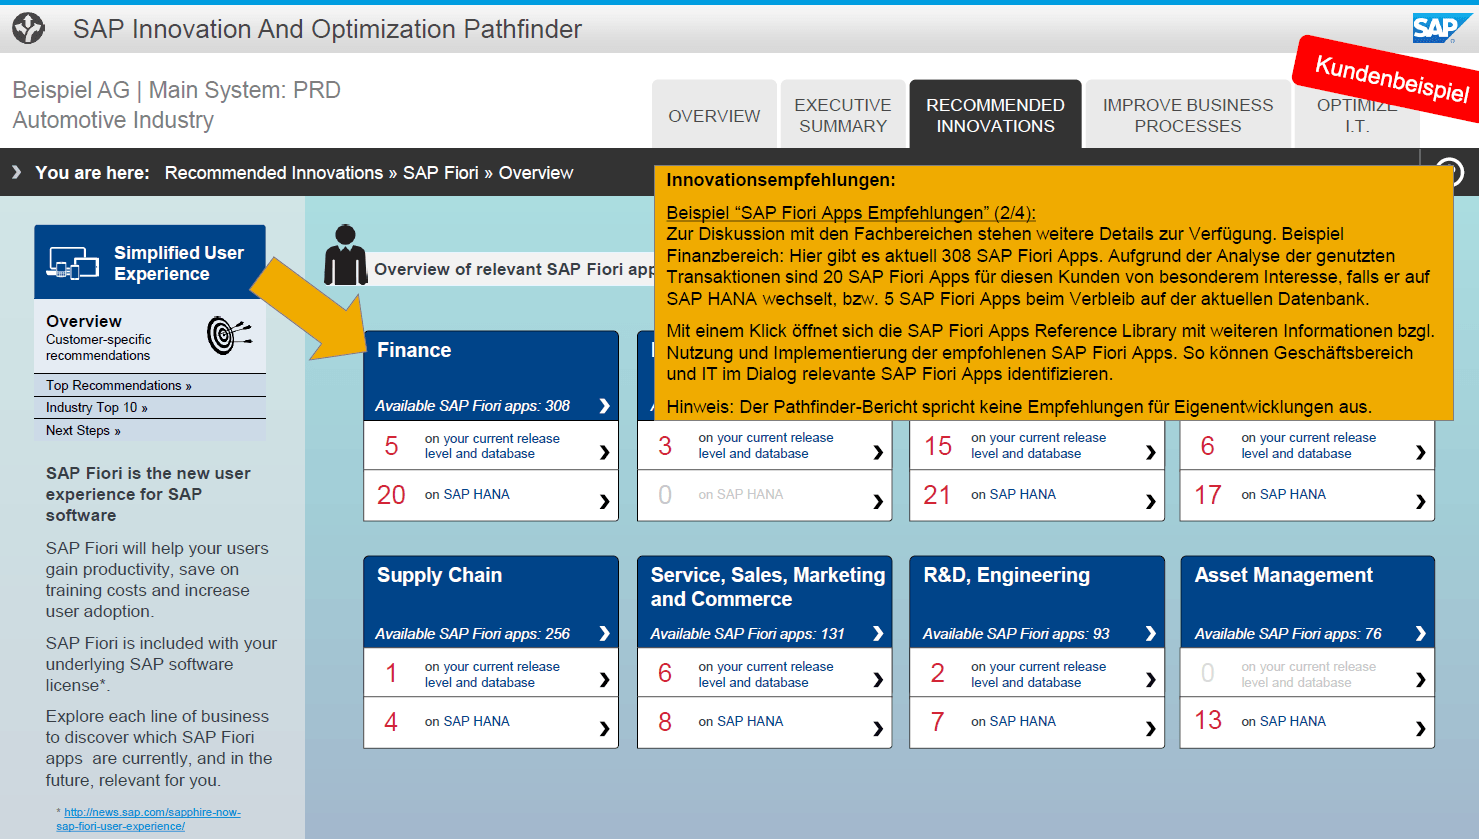 Blog_Screen_SAP Pathfinder_Innovationen 2